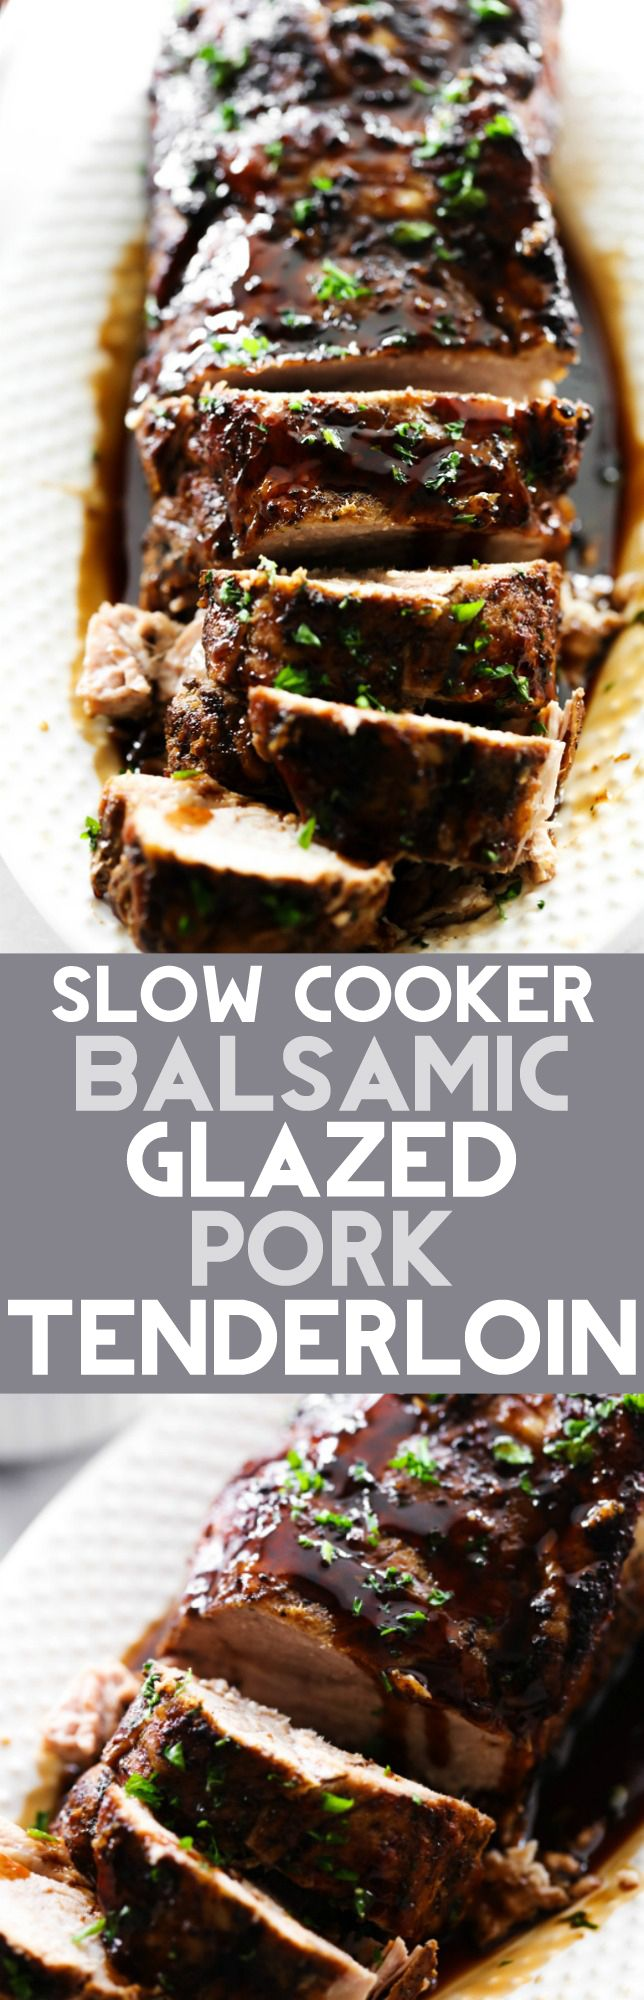 This Slow Cooker Balsamic Glazed Pork Tenderloin is out of this world! The glaze will be one of the best things you ever eat! This recipe tastes like something you would order at a fancy restaurant. It is definitely a new family favorite.